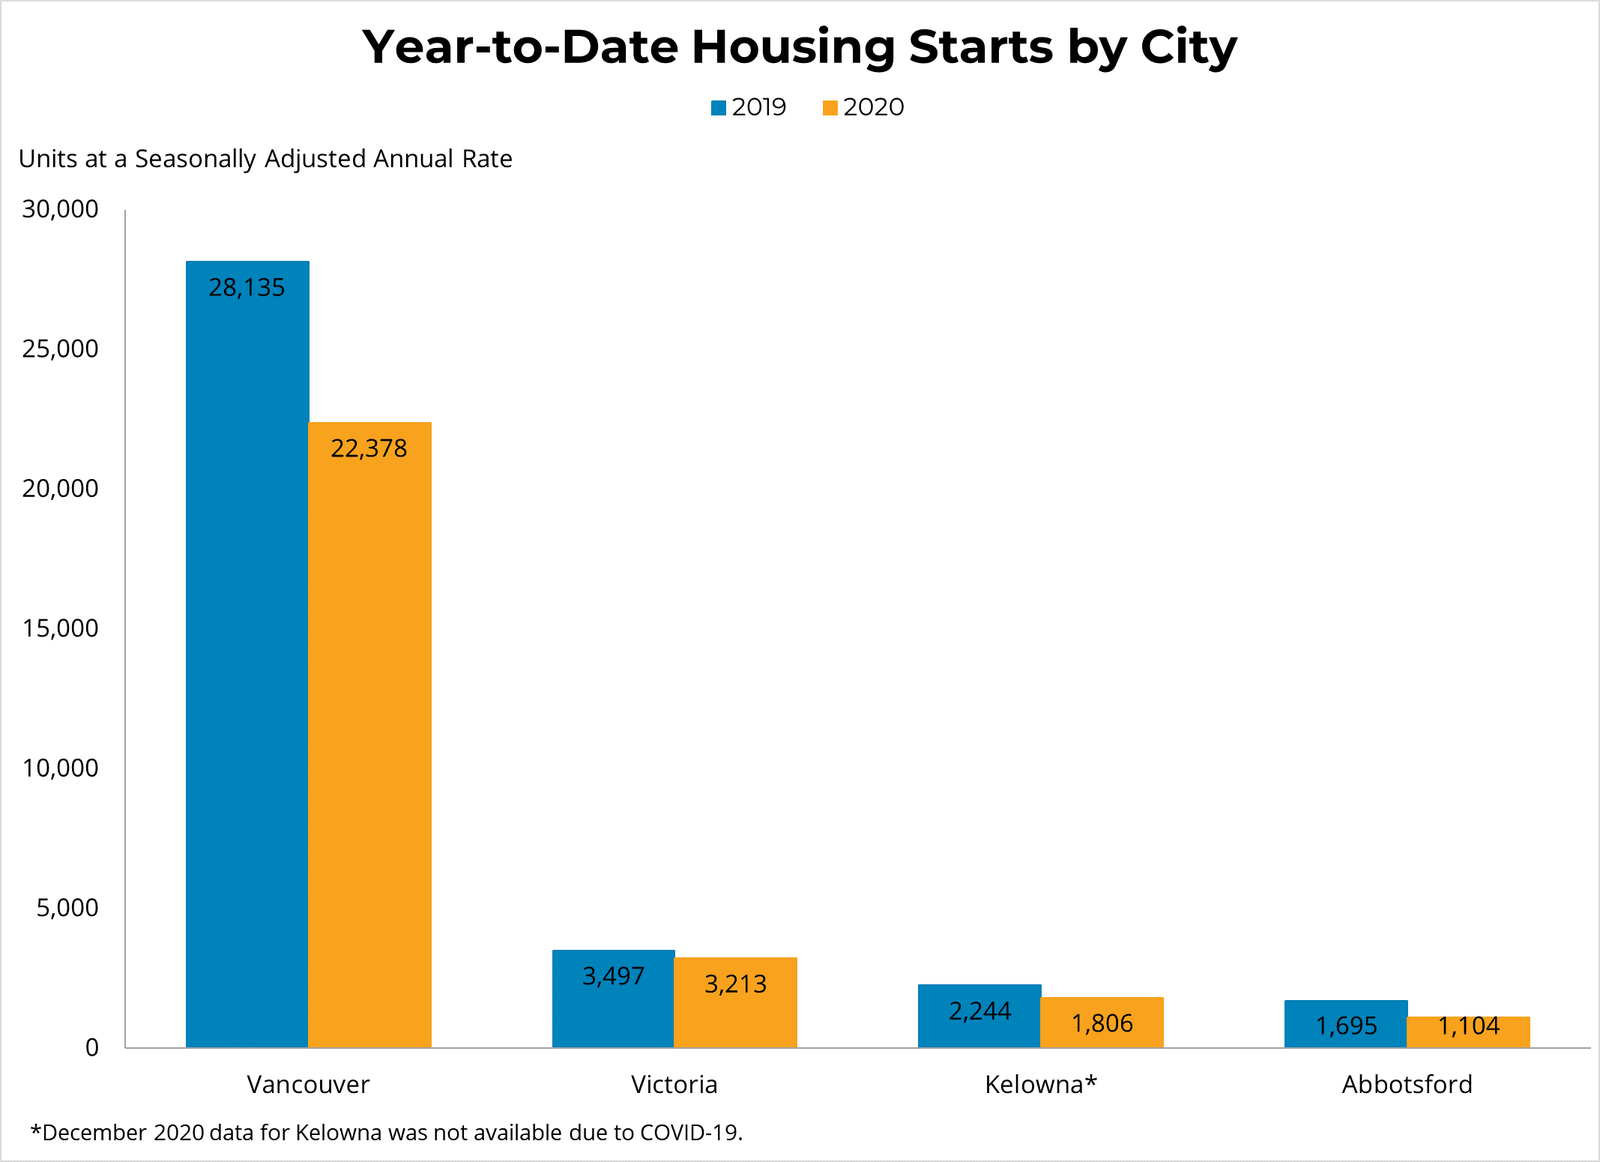 YTD BY CITY Housing Starts